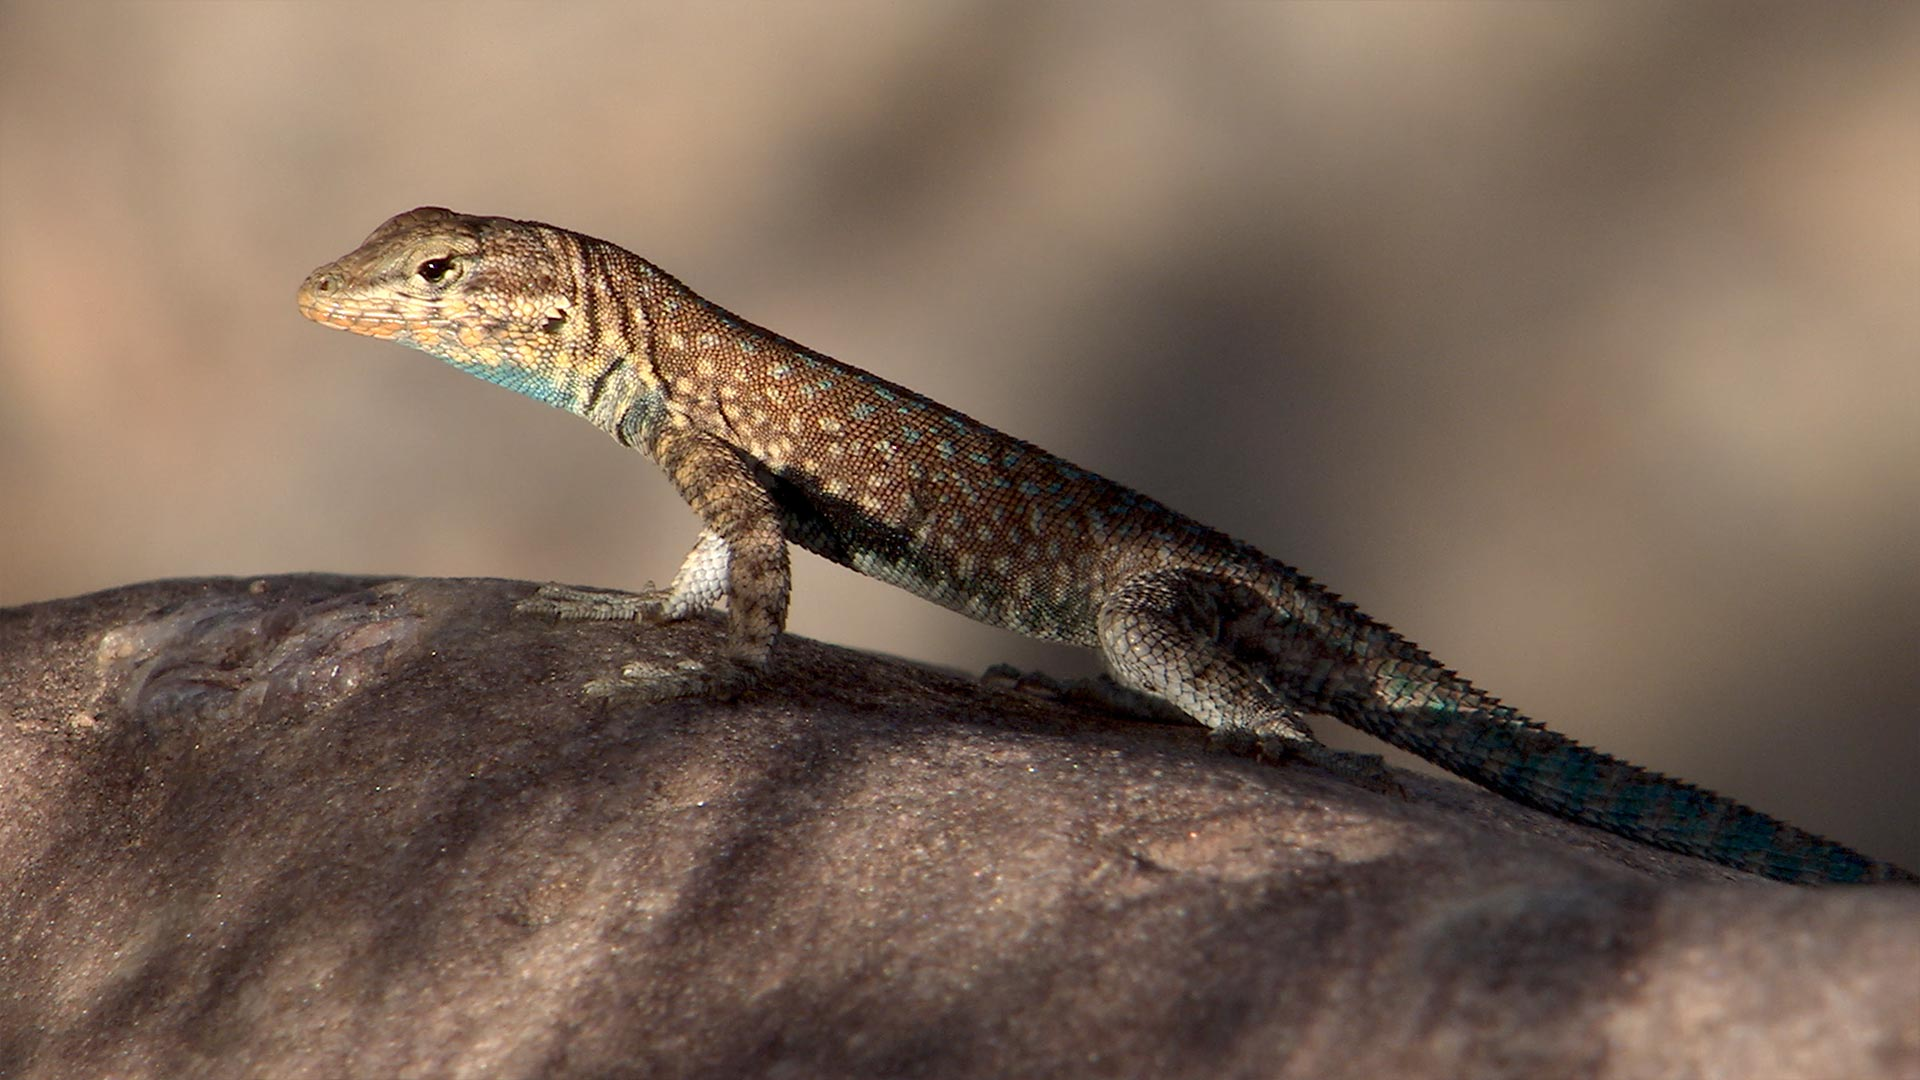 Lizard in the Grand Canyon